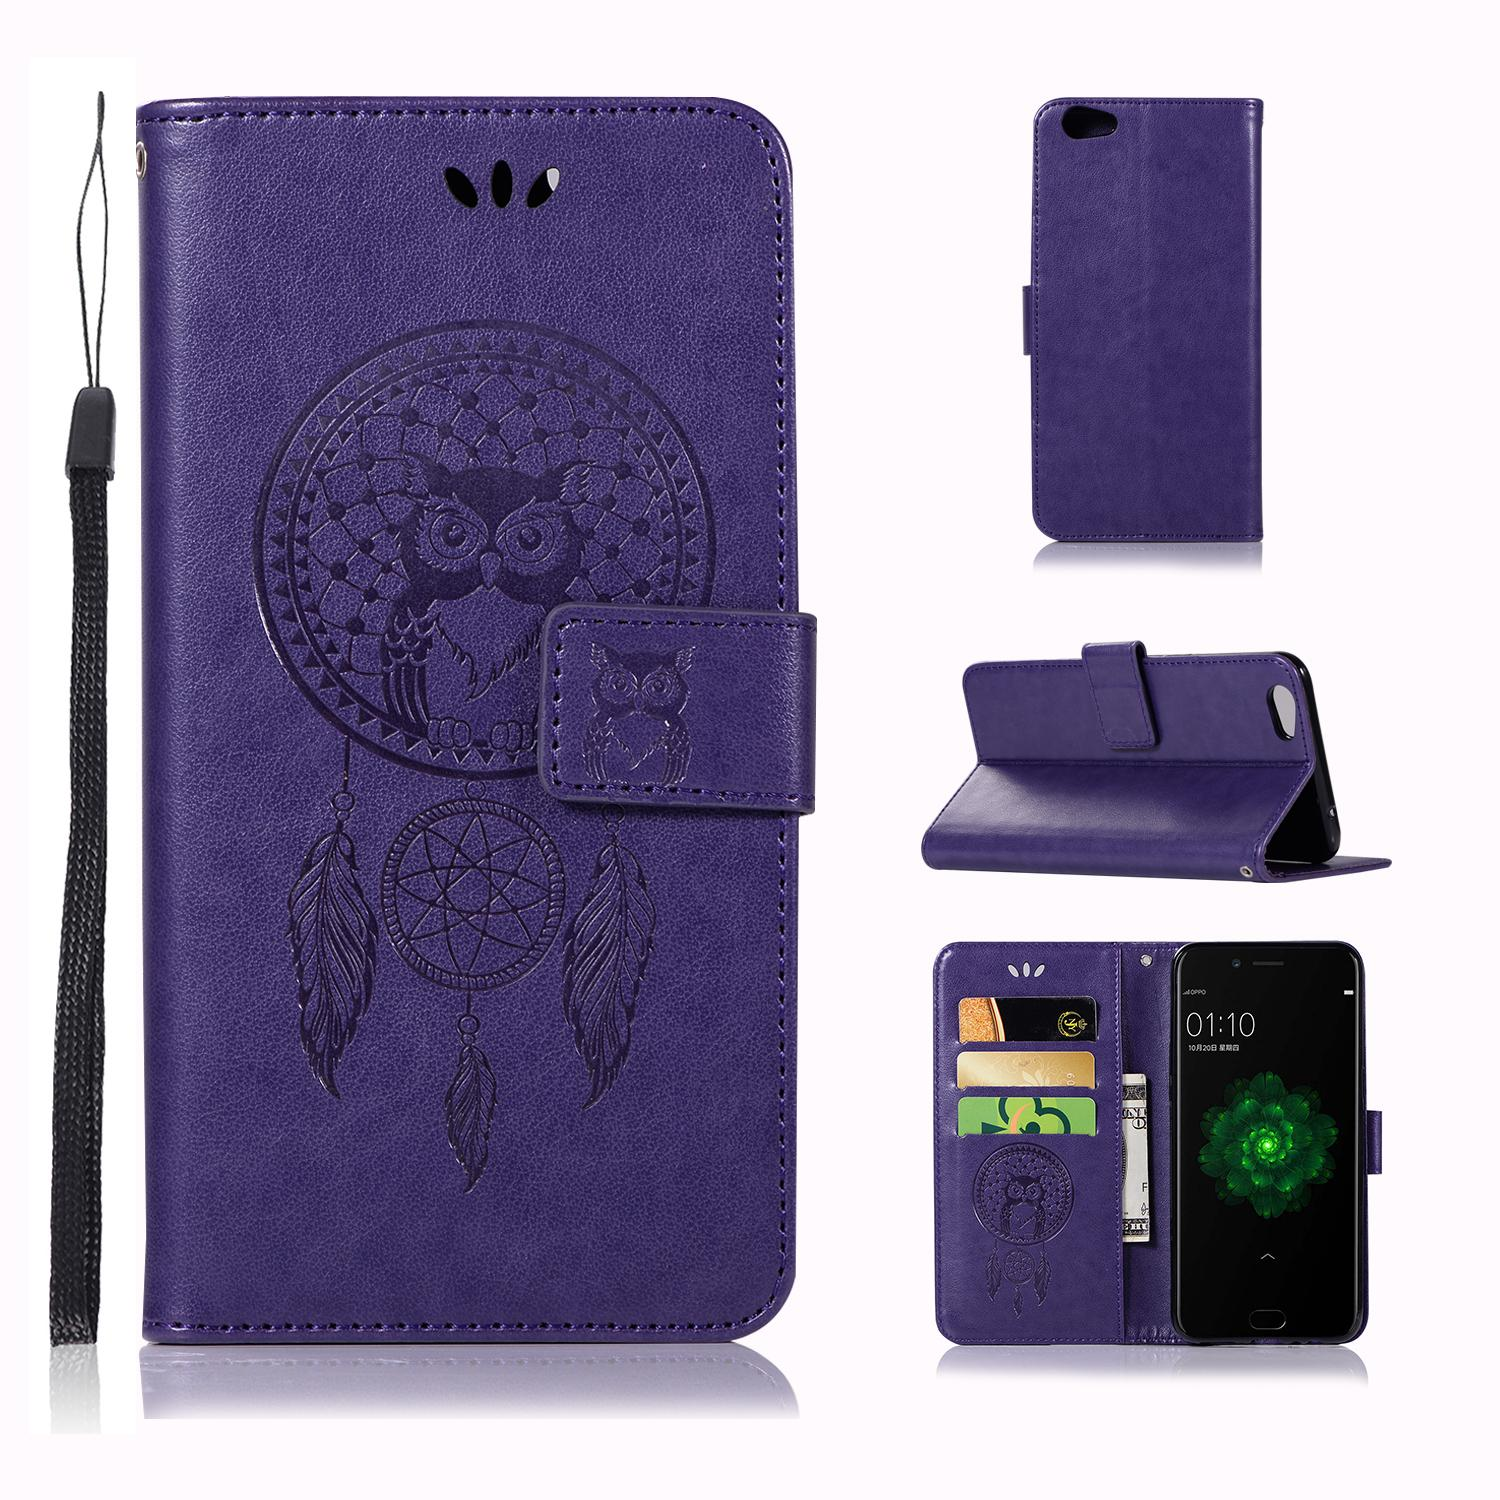 Luxury For Oppo F3 Plus/r9s Plus Casing , 3d Owl Embossing Leather Folio Flip Case Cover By Life Goes On.